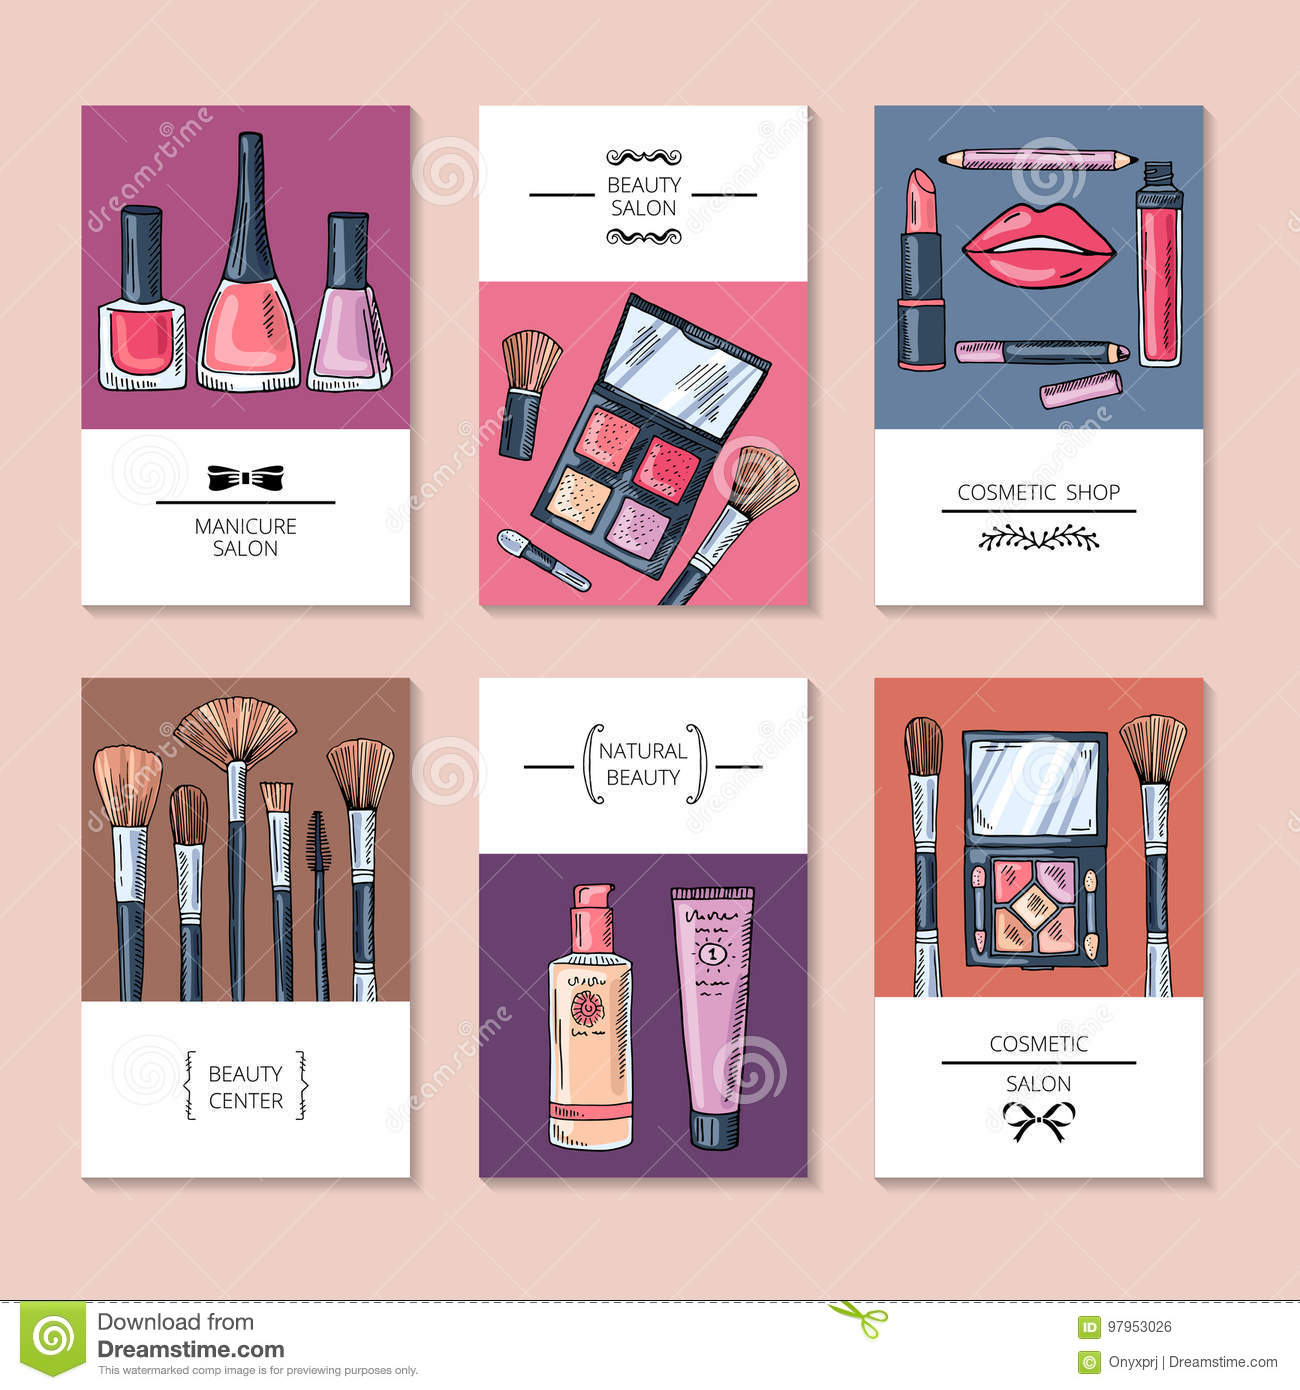 Design template of different business cards or banners for beauty download design template of different business cards or banners for beauty salon stock vector illustration colourmoves